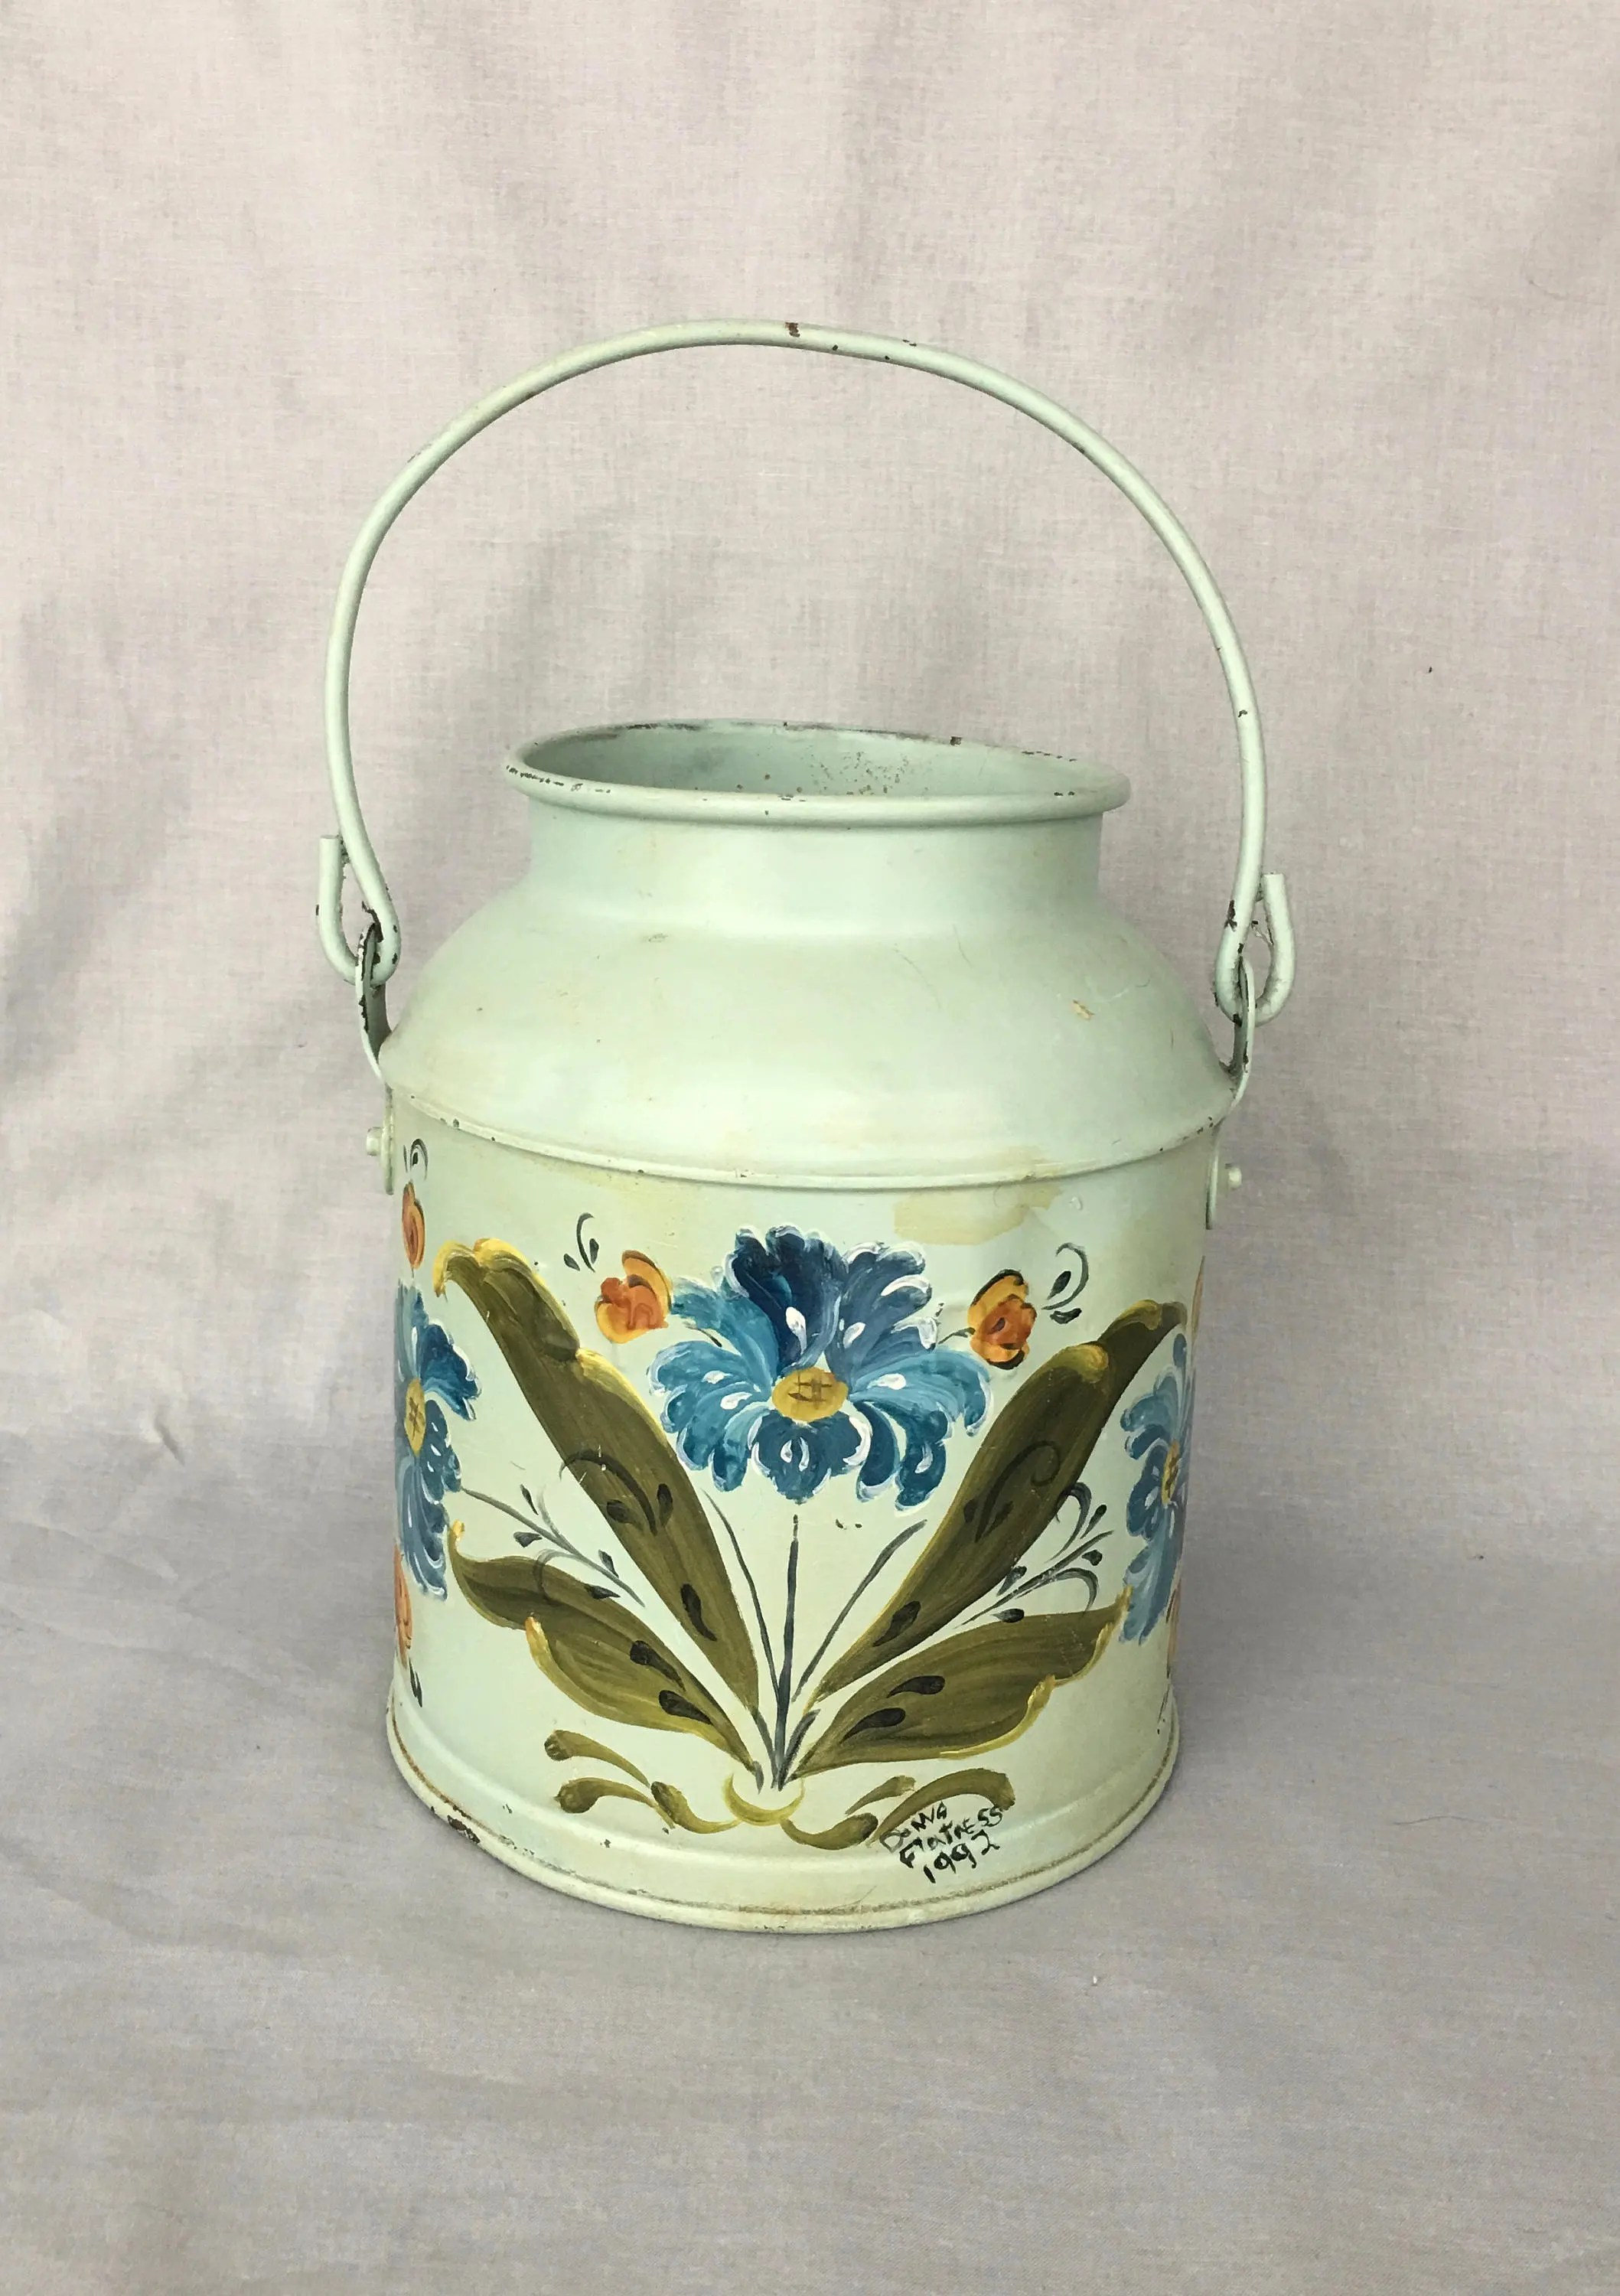 Decorative Milk Urn Vintage Metal Milk Churn Can With Handle Hand Painted Decorative Farmhouse Folk Art 9